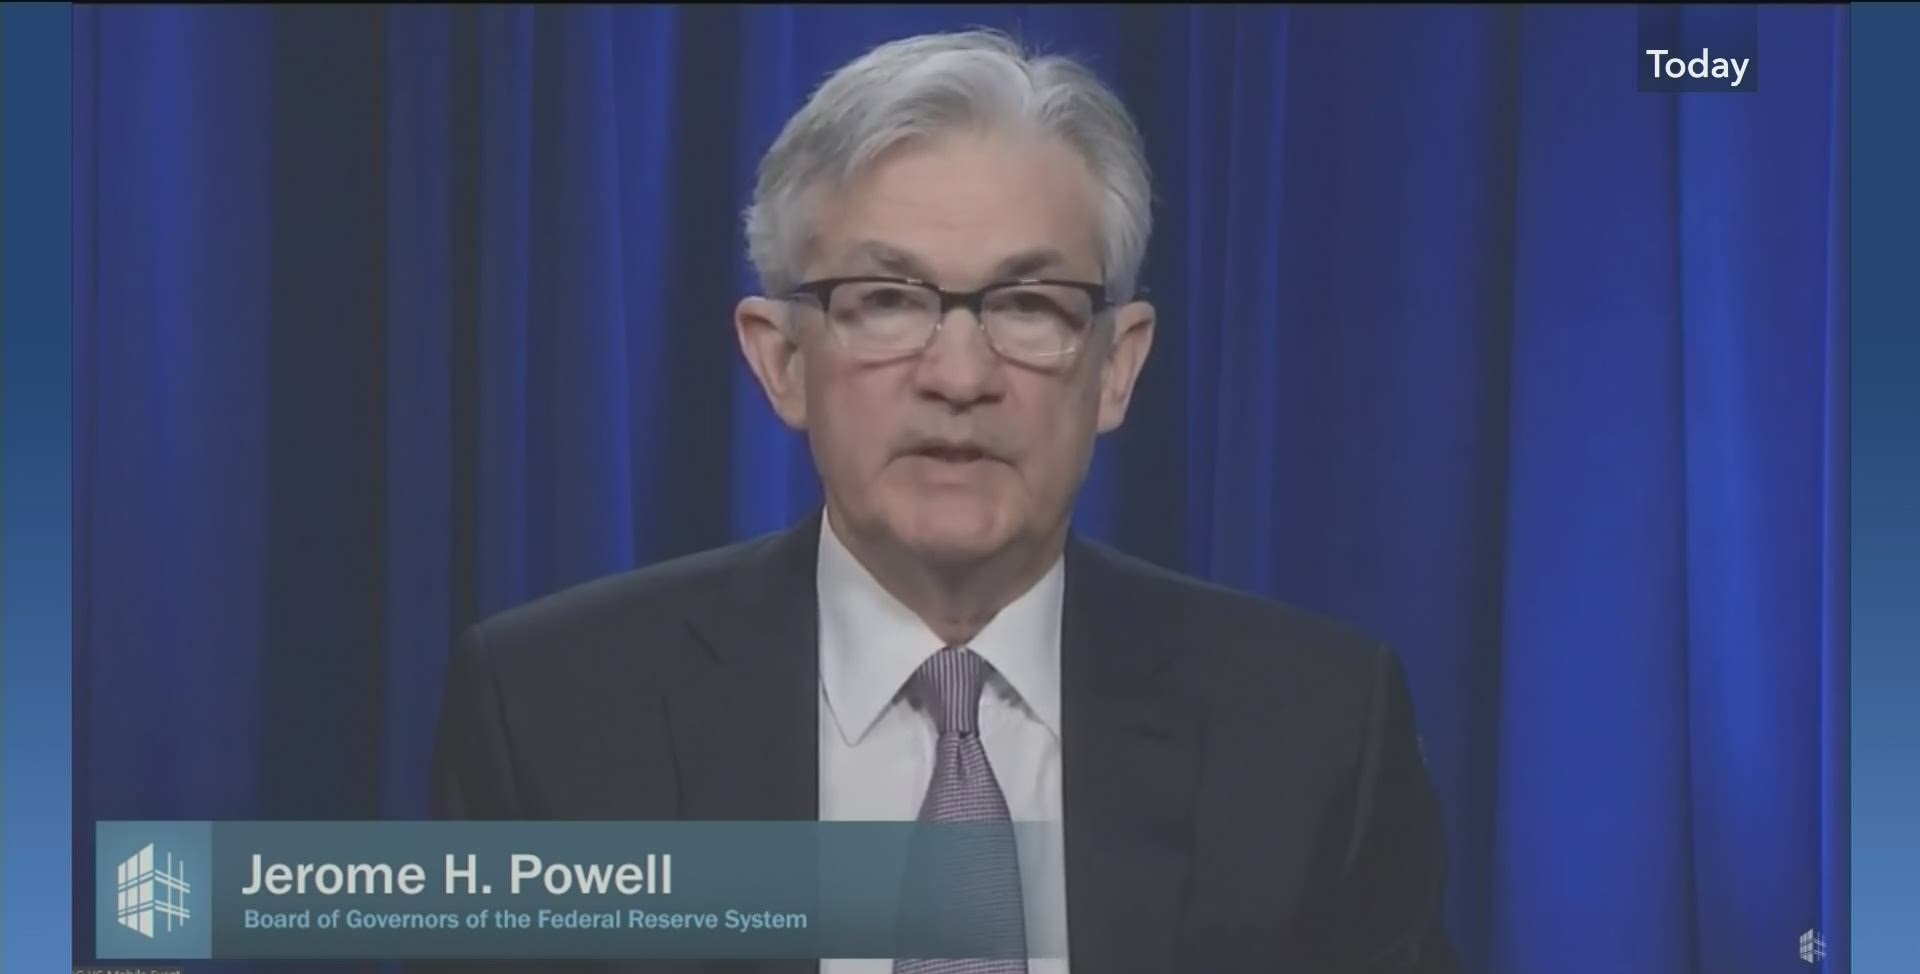 jerome powell - تورم